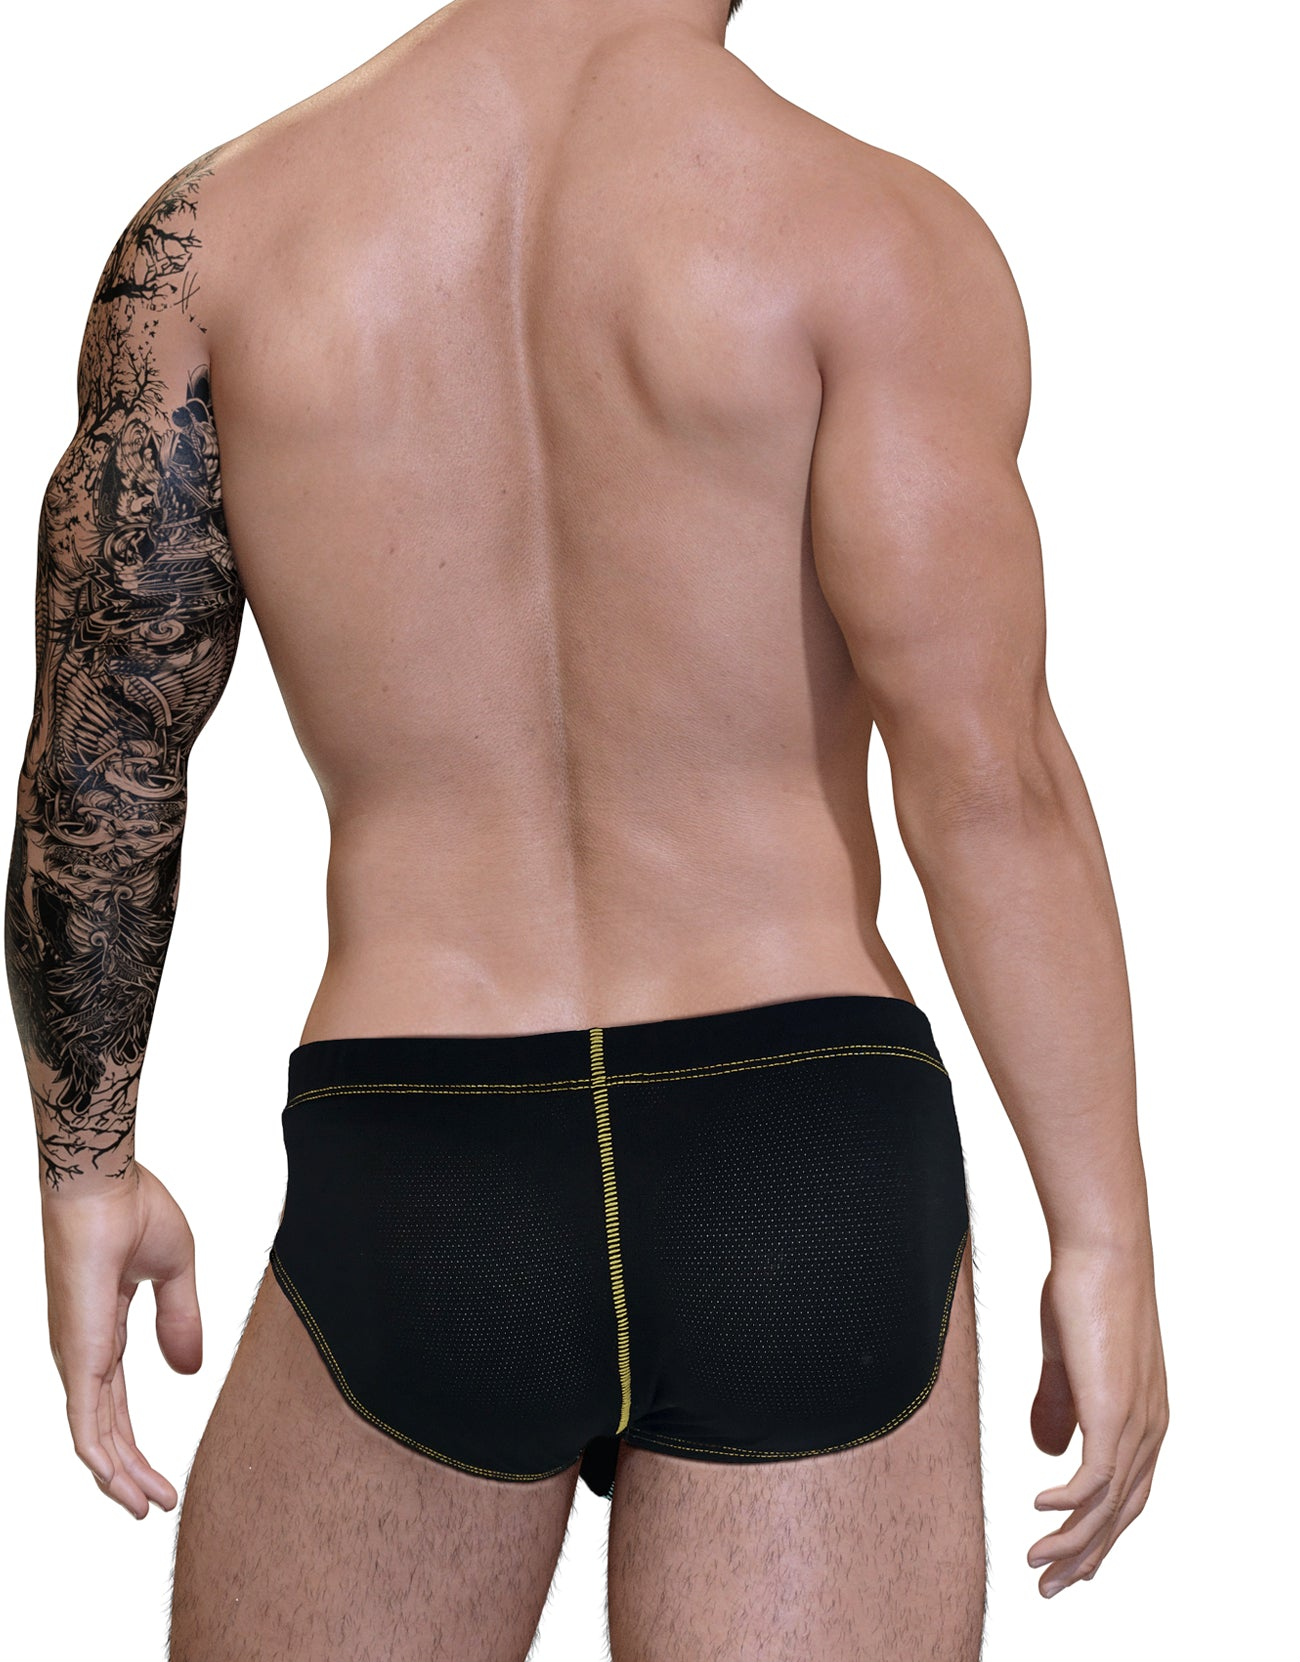 Stitch Big Boy Pouch Brief - Yellow - Big Penis Underwear, WildmanT - WildmanT